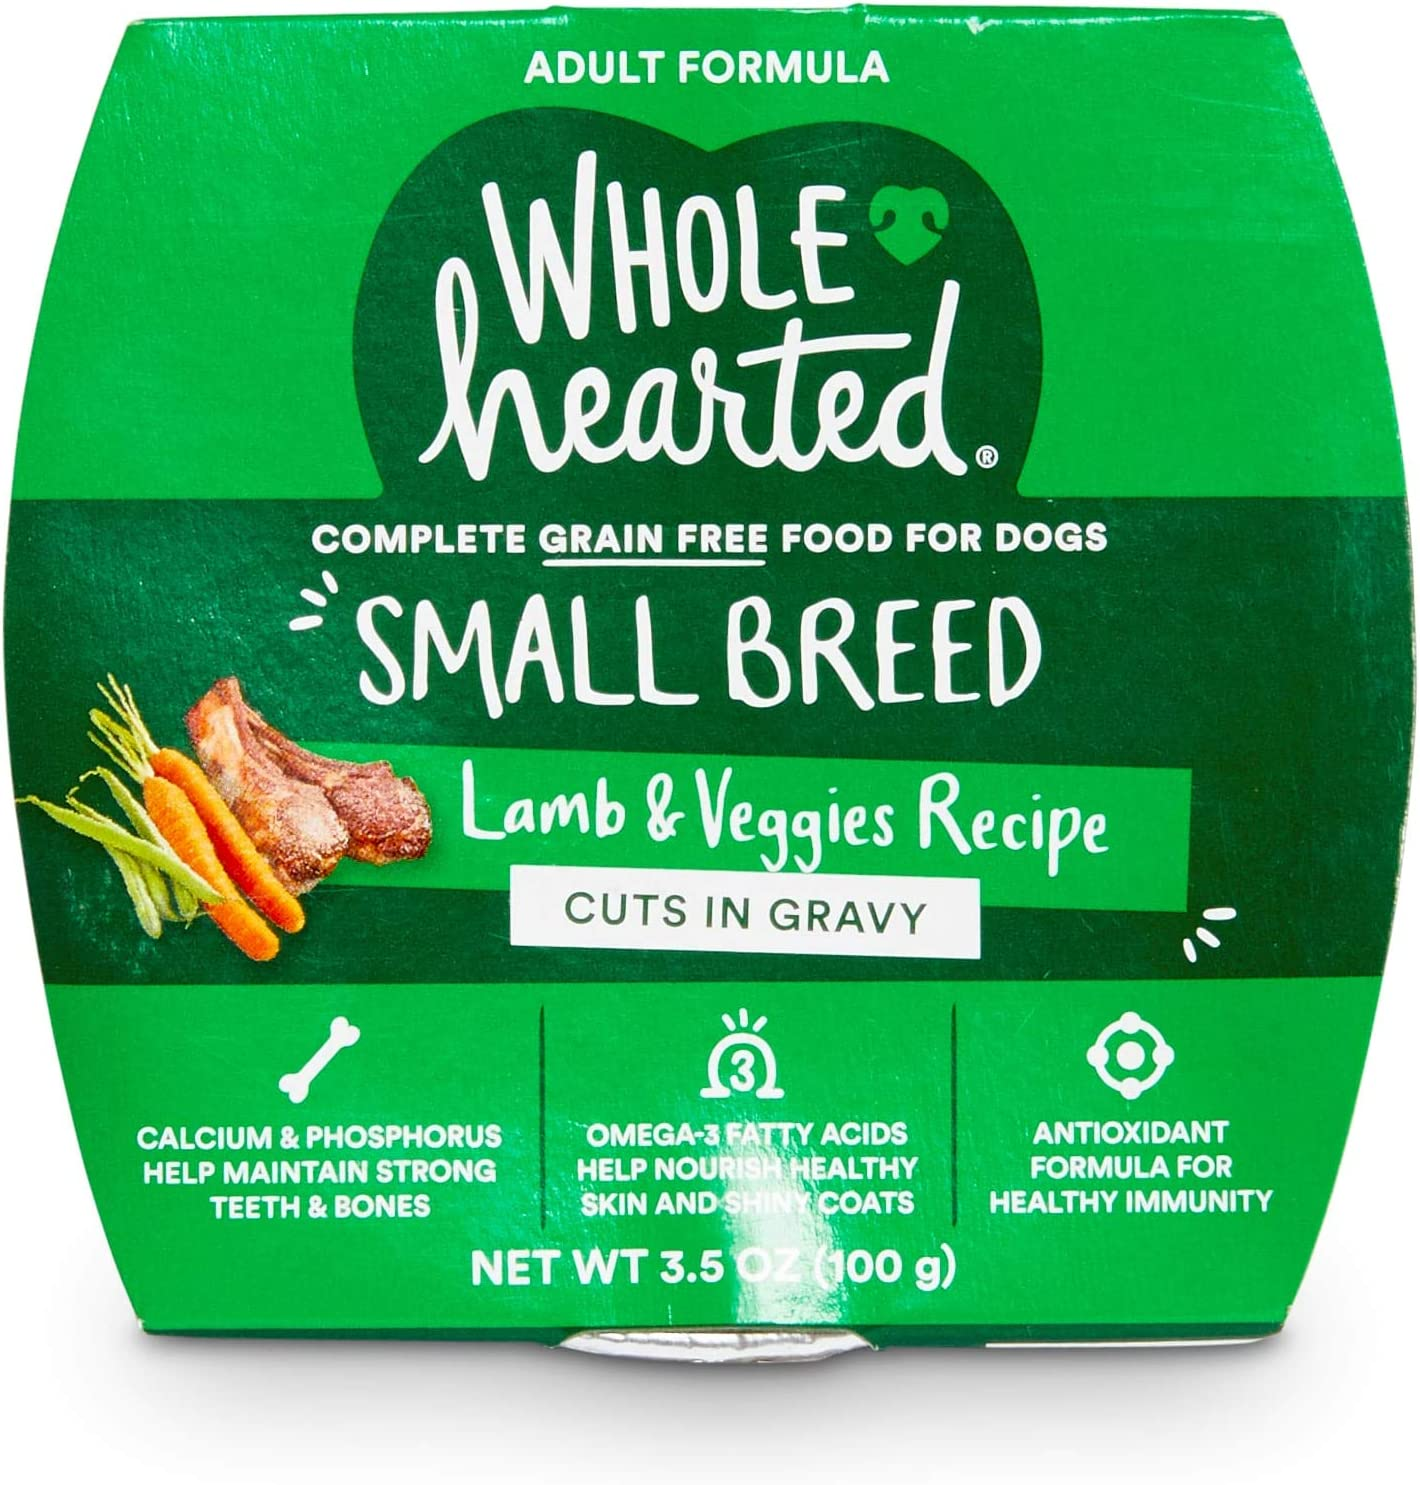 WholeHearted Grain-Free Lamb & Veggies Cuts in Gravy Wet Dog Food, 3.5 oz., Case of 8, 8 X 3.5 OZ